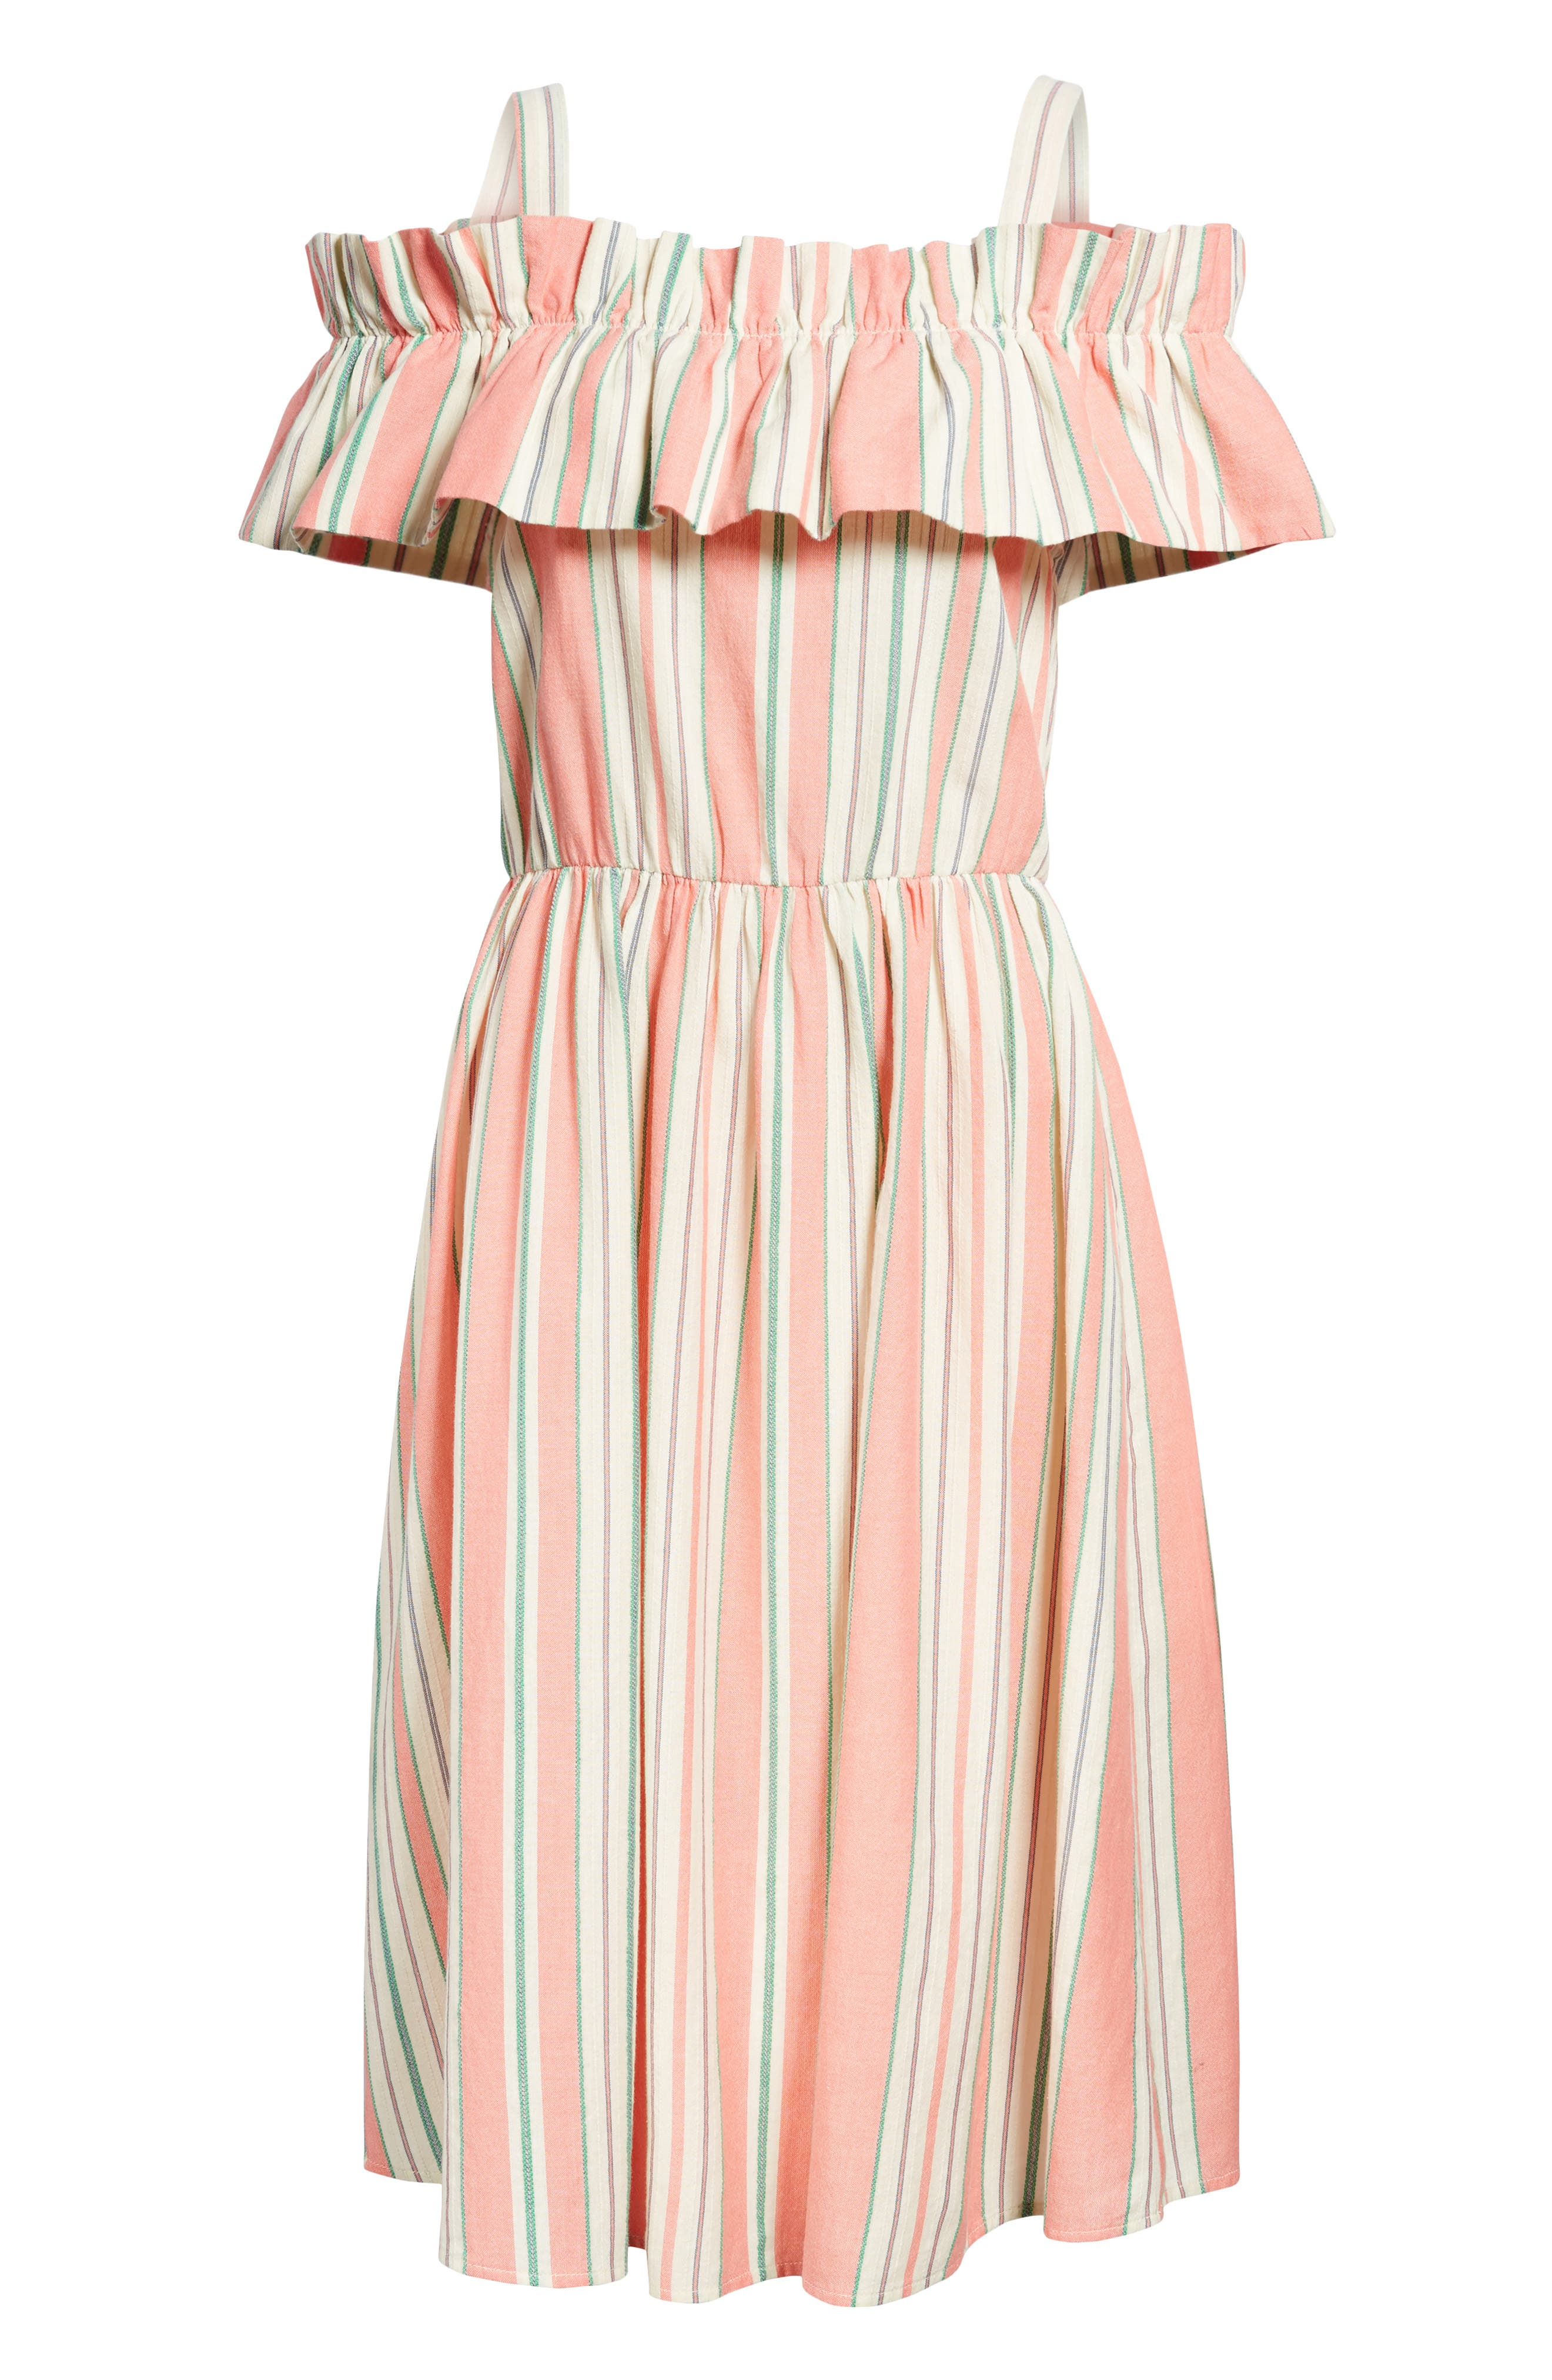 Stripe Ruffle Cold Shoulder Dress,                             Alternate thumbnail 6, color,                             Coral Amber Bold Stripe